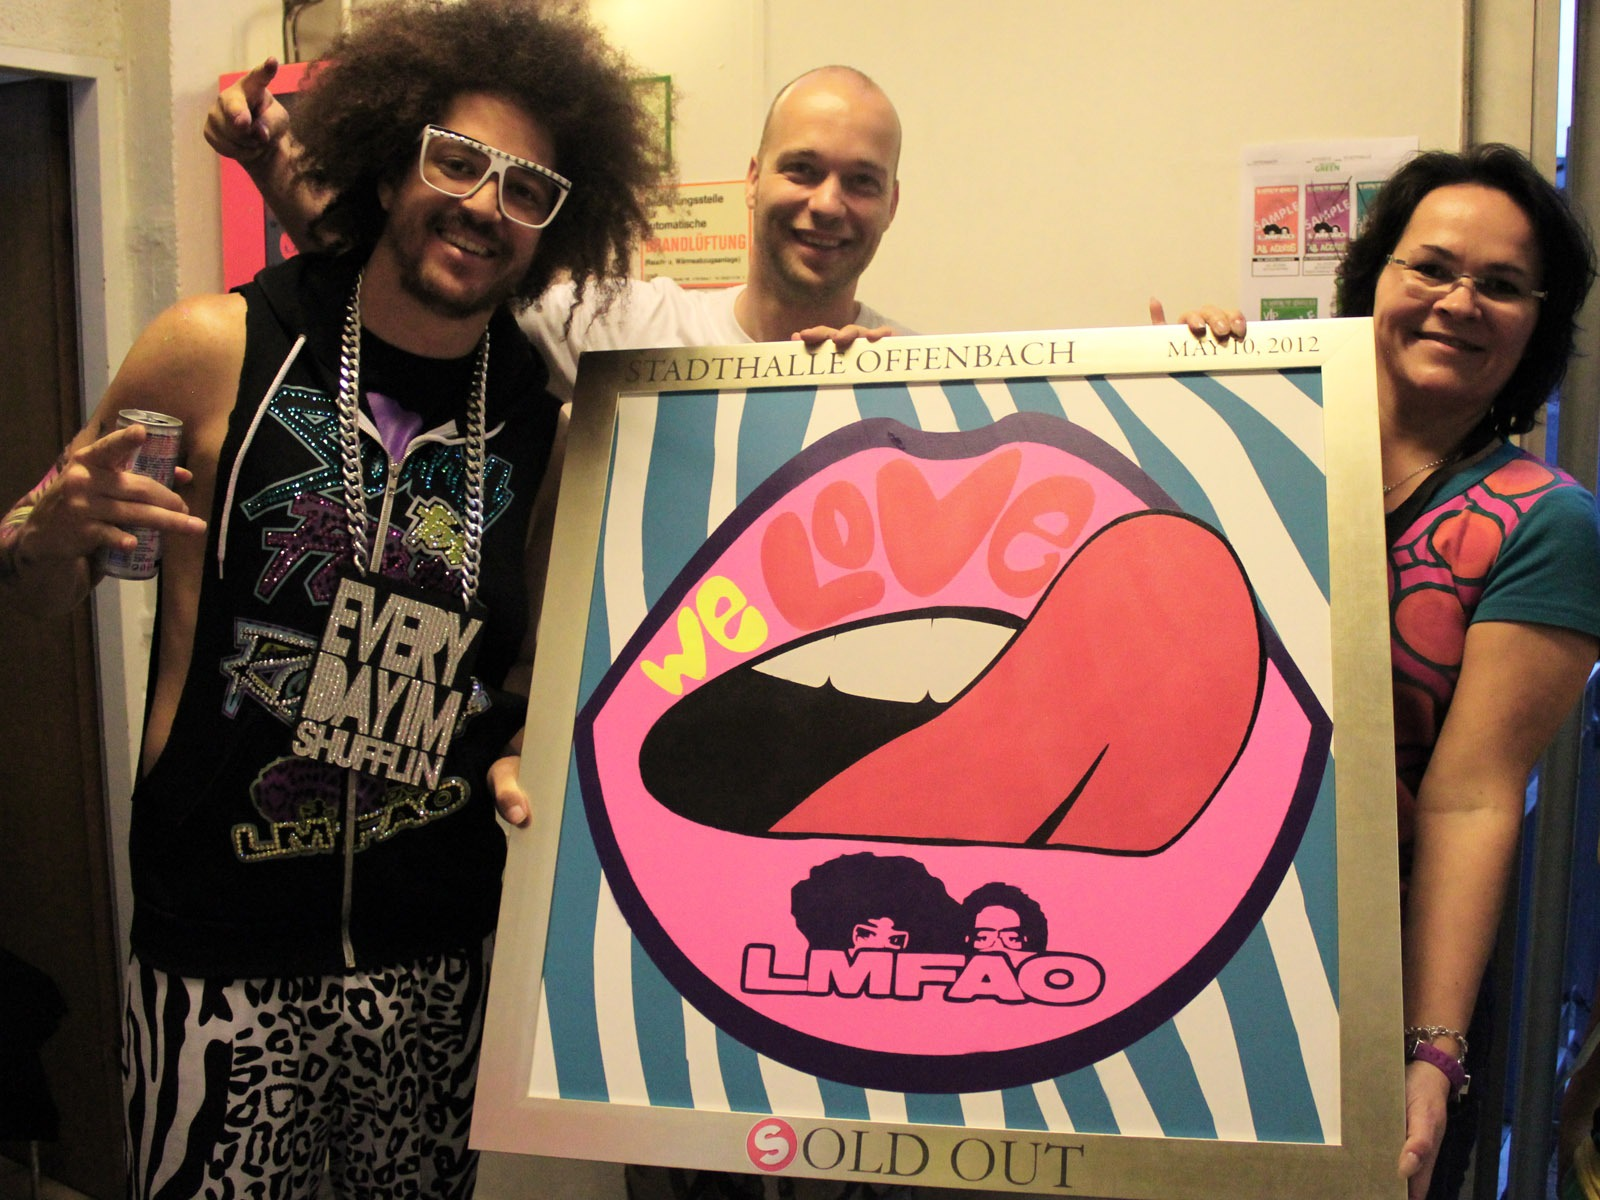 graffitiauftrag_artmos4_sold_out_award_lmfao_Stadthalle_Offenbach_Leinwand_Graffiti